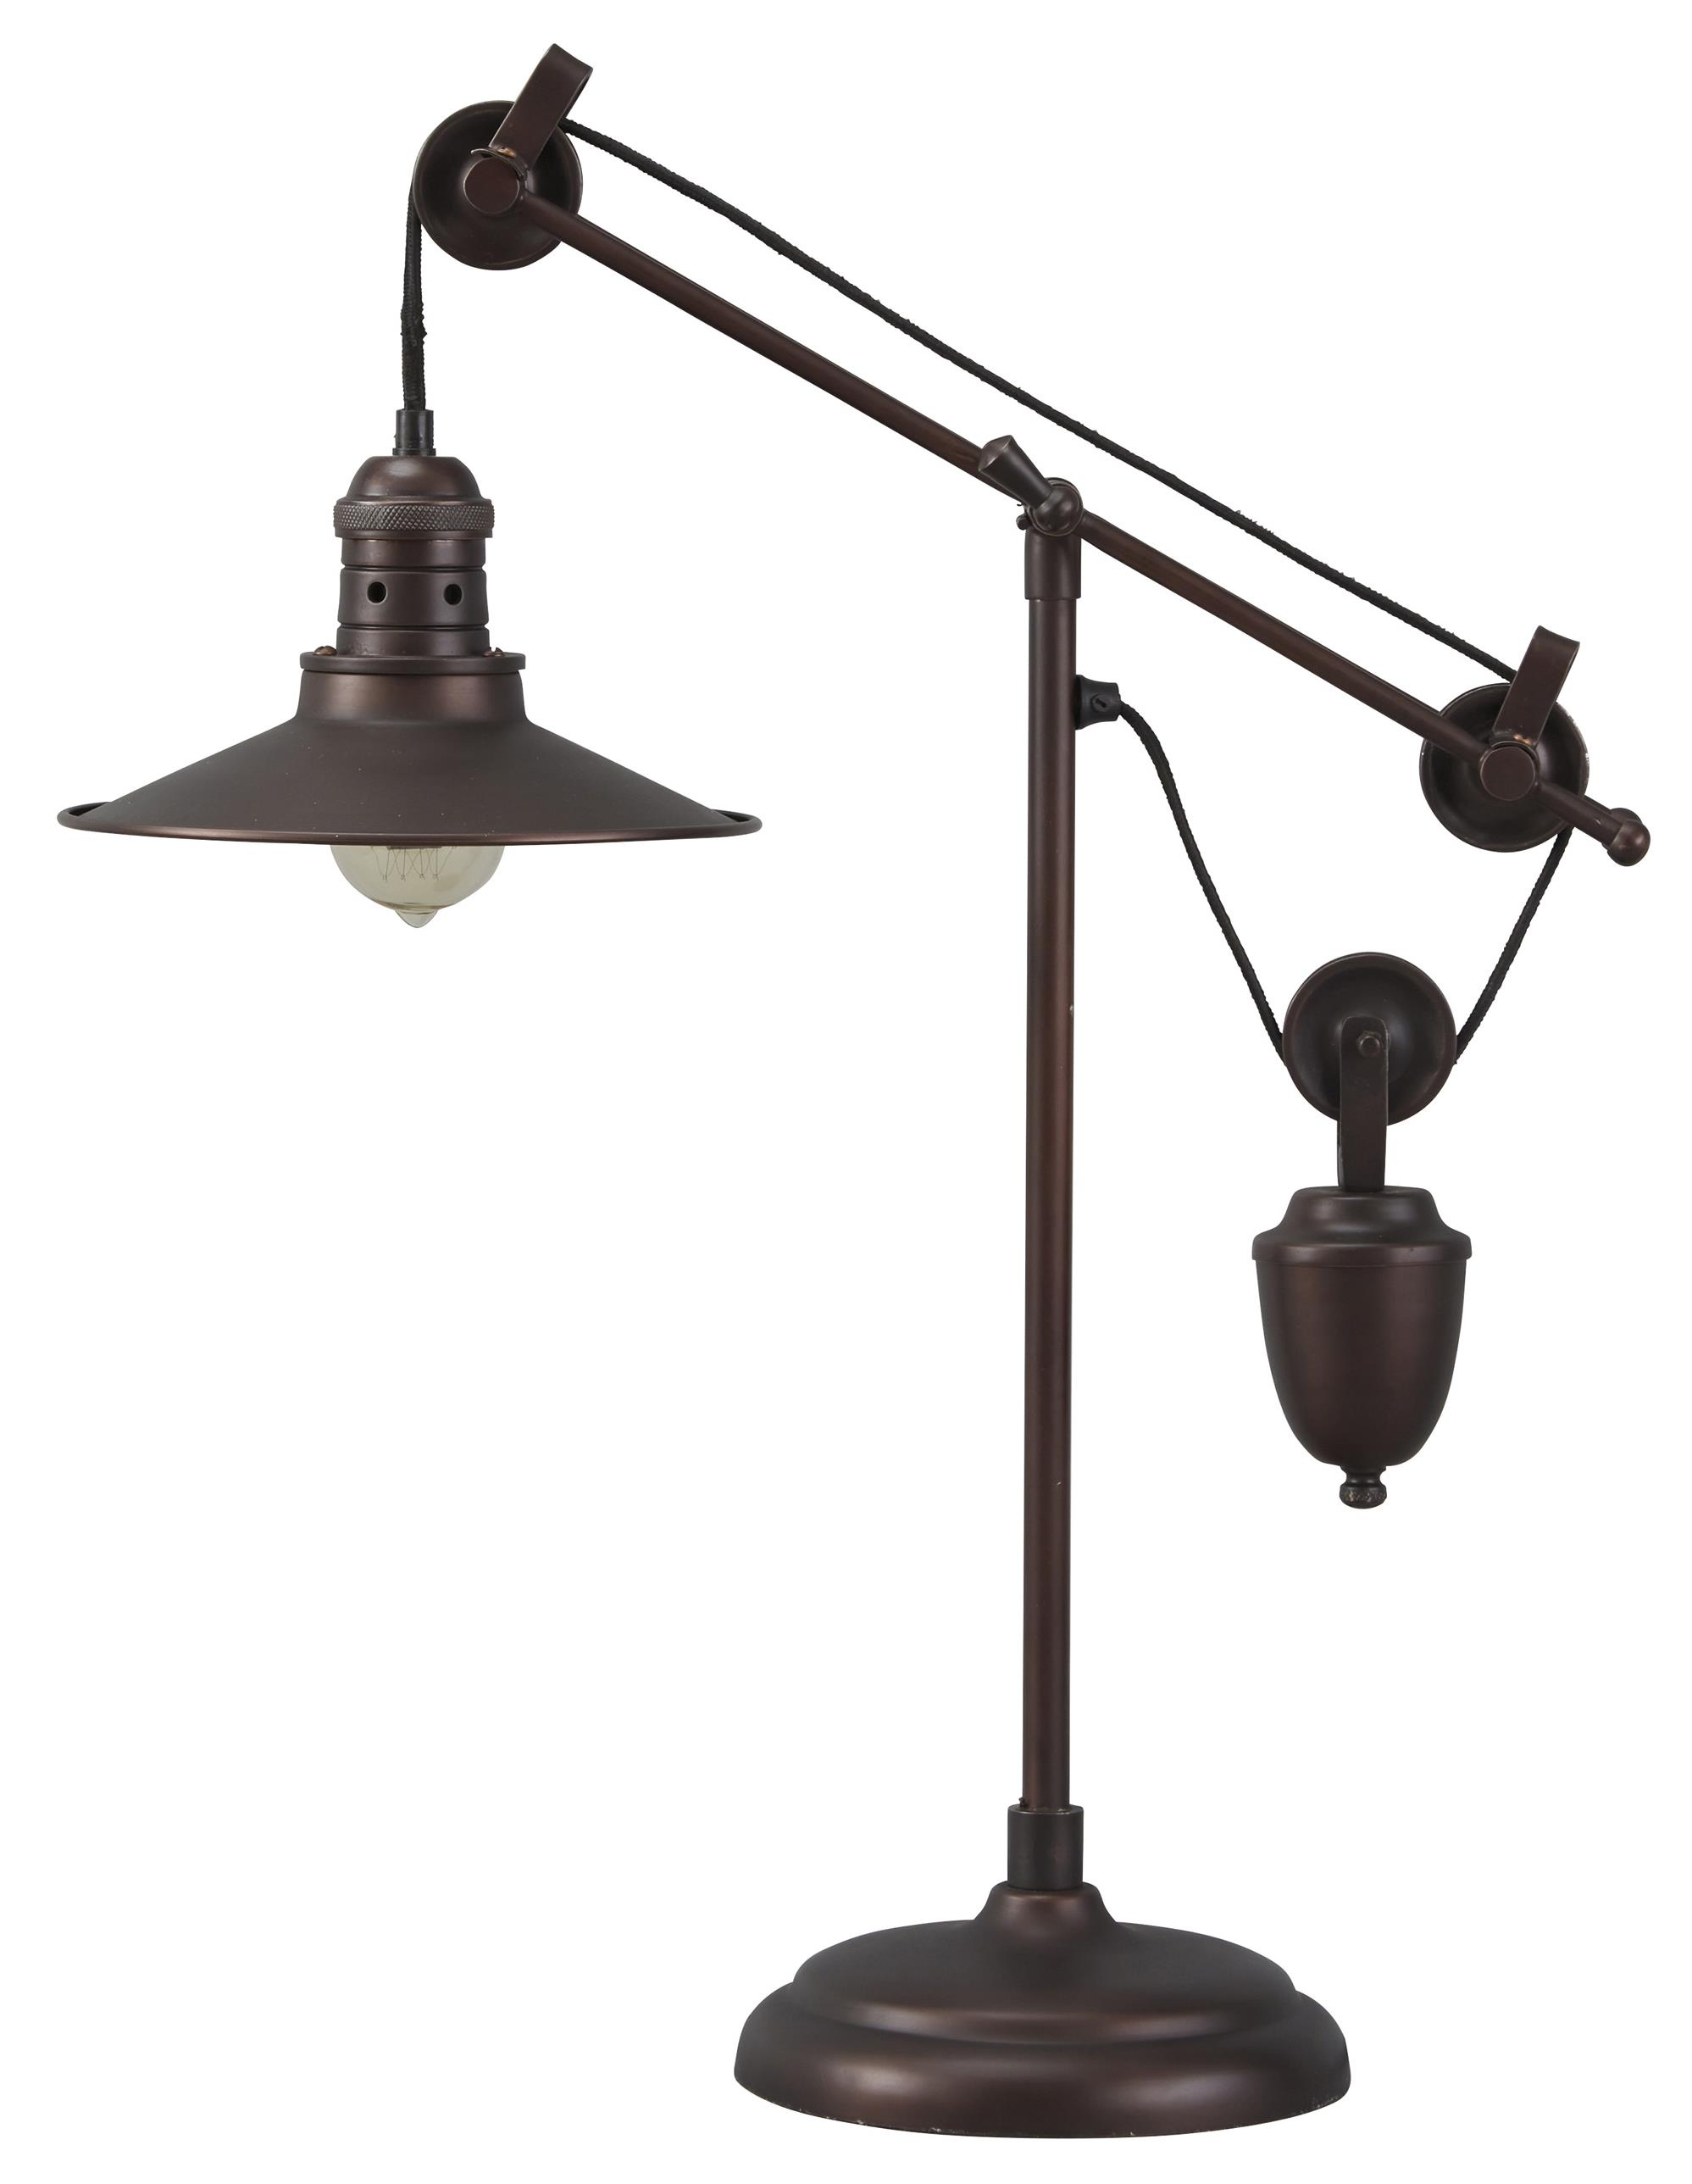 Beau Signature Design By Ashley Lamps   Vintage Style Kylen Metal Desk Lamp    Item Number: